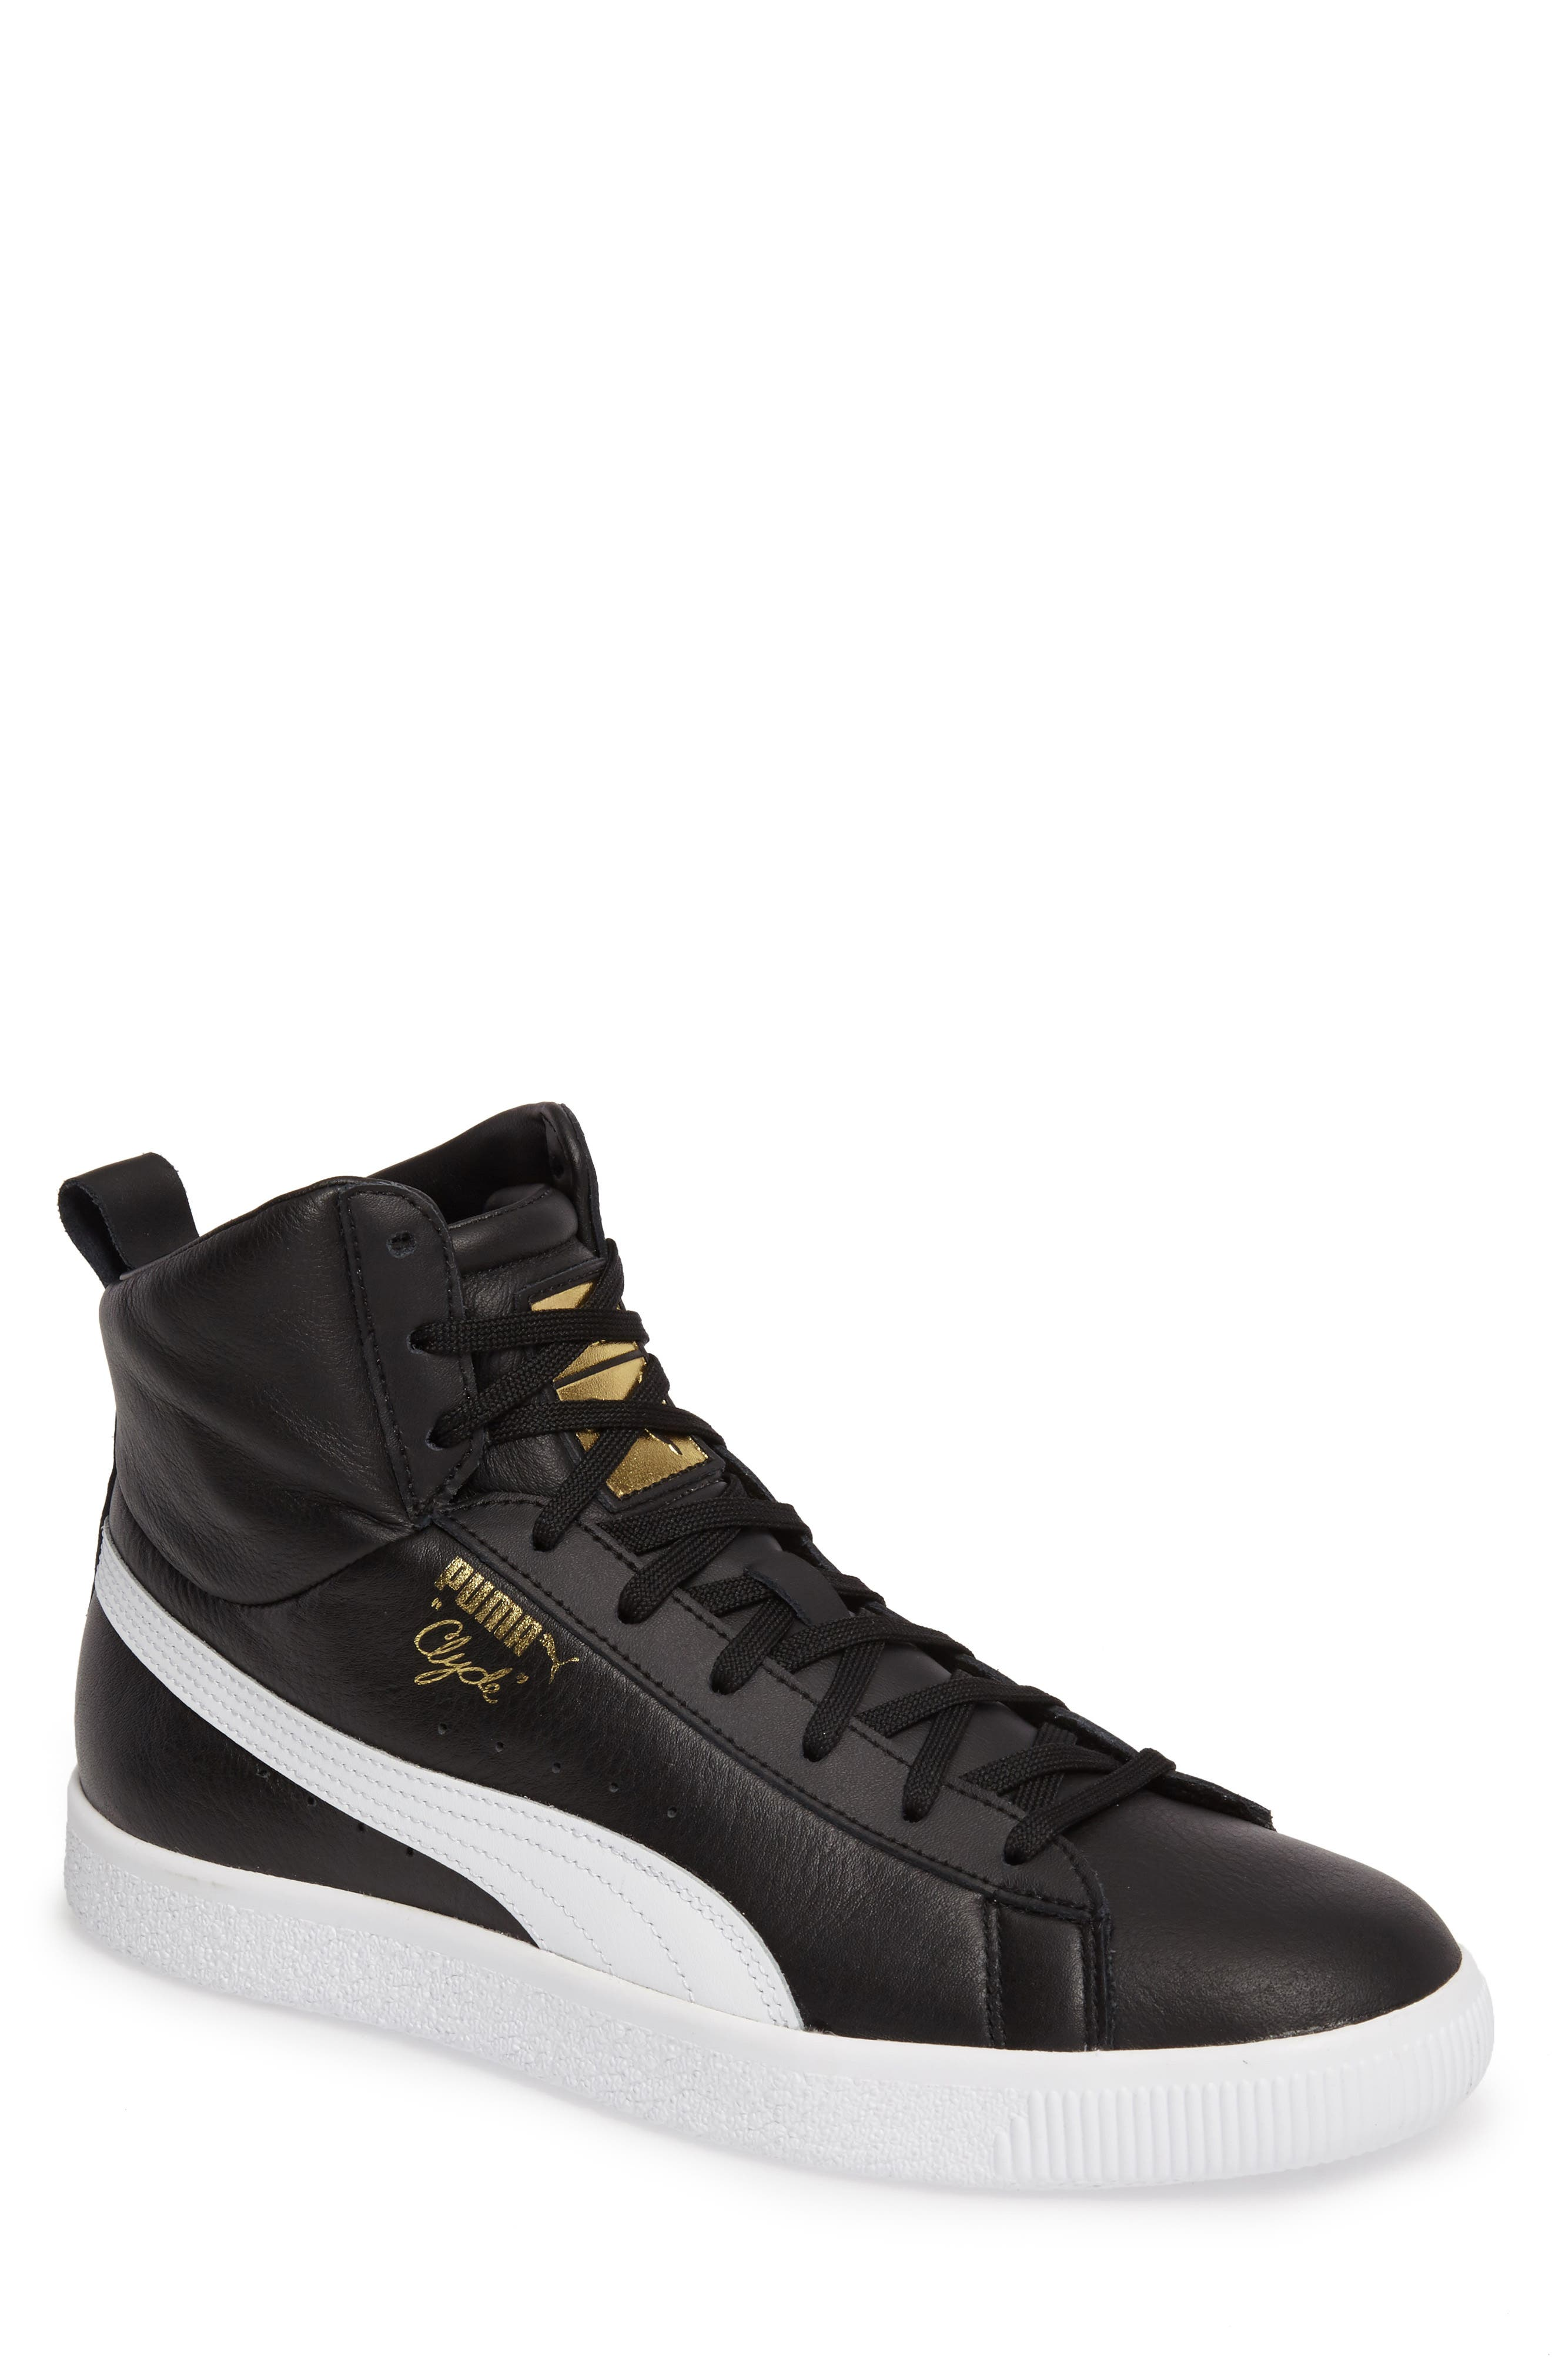 Clyde Mid Sneaker,                         Main,                         color, 001